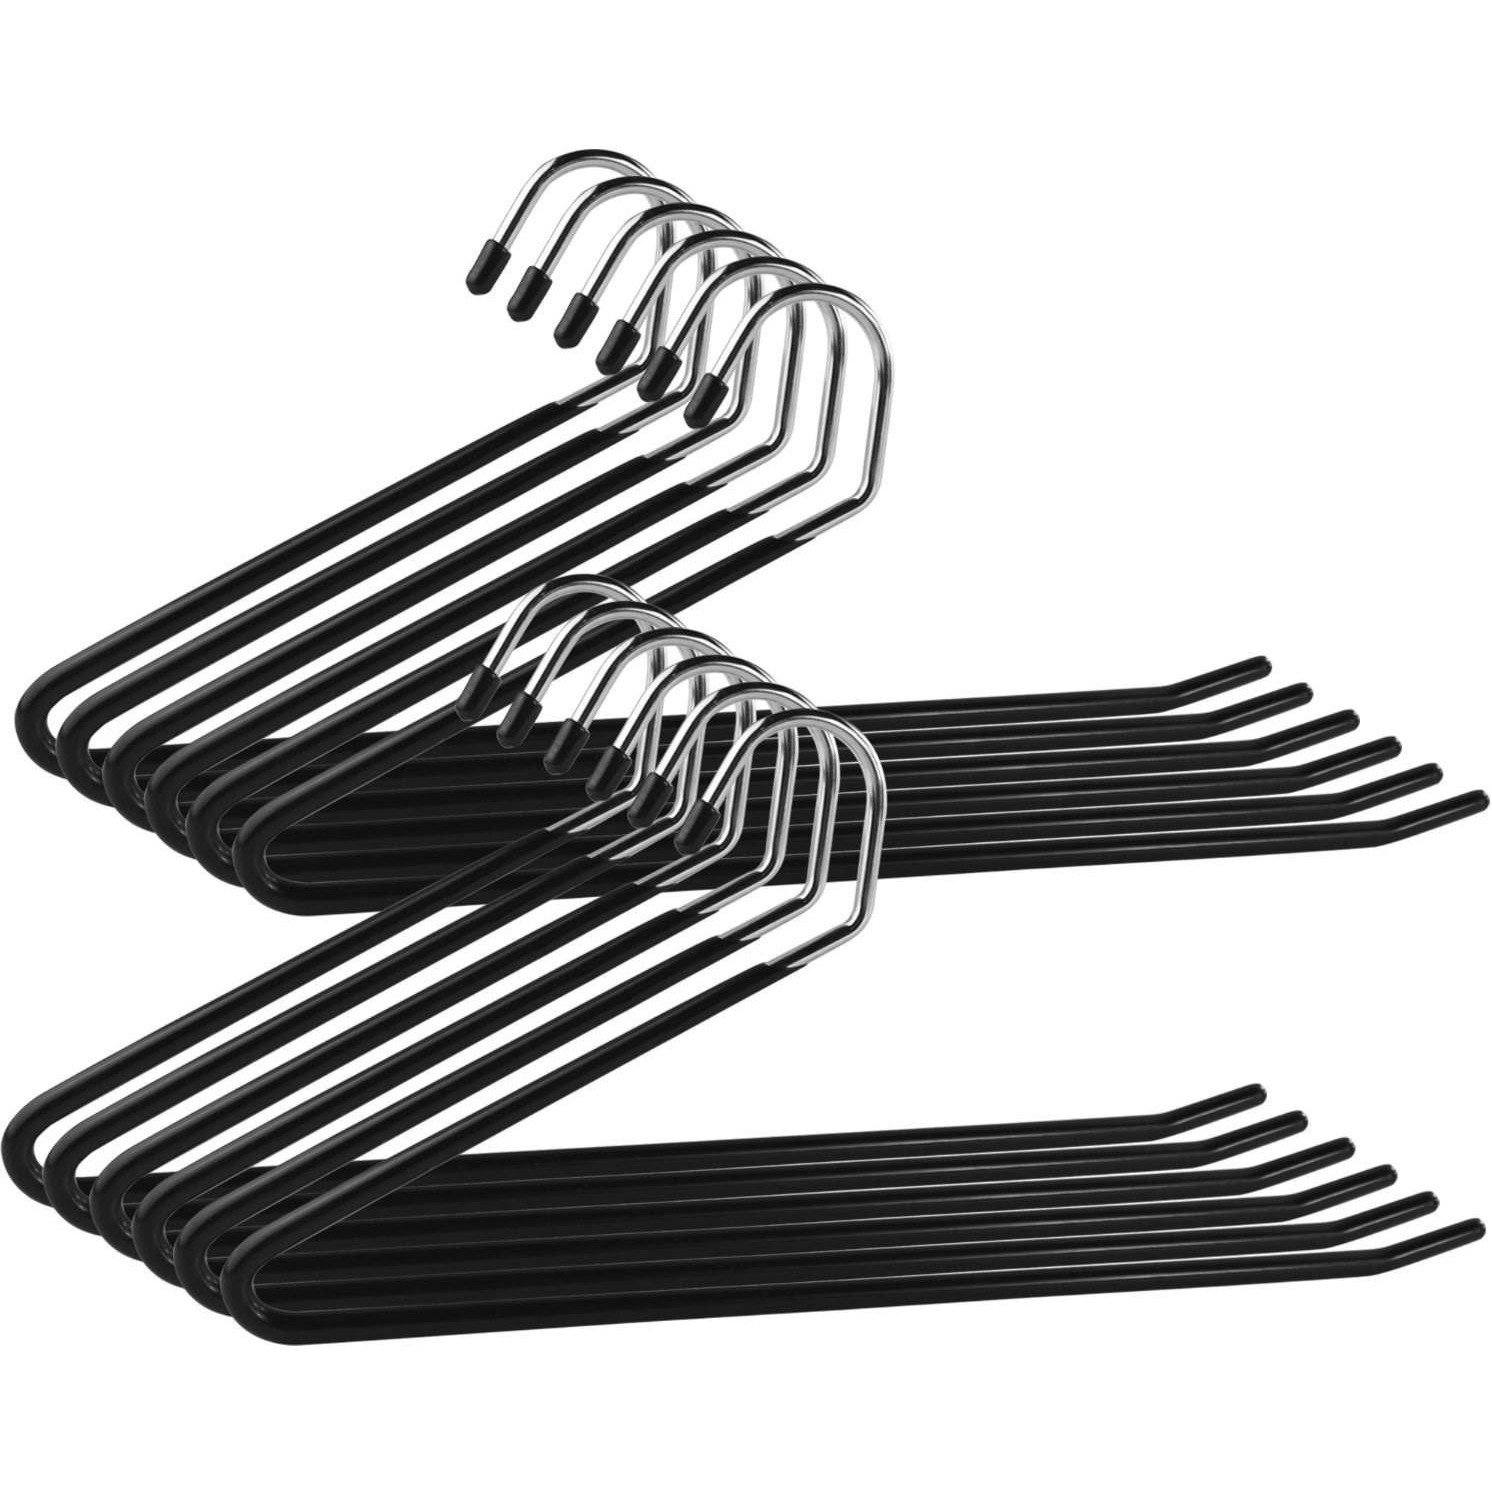 Heavy Duty Slacks Pants Open Ended Hangers - Set of 12